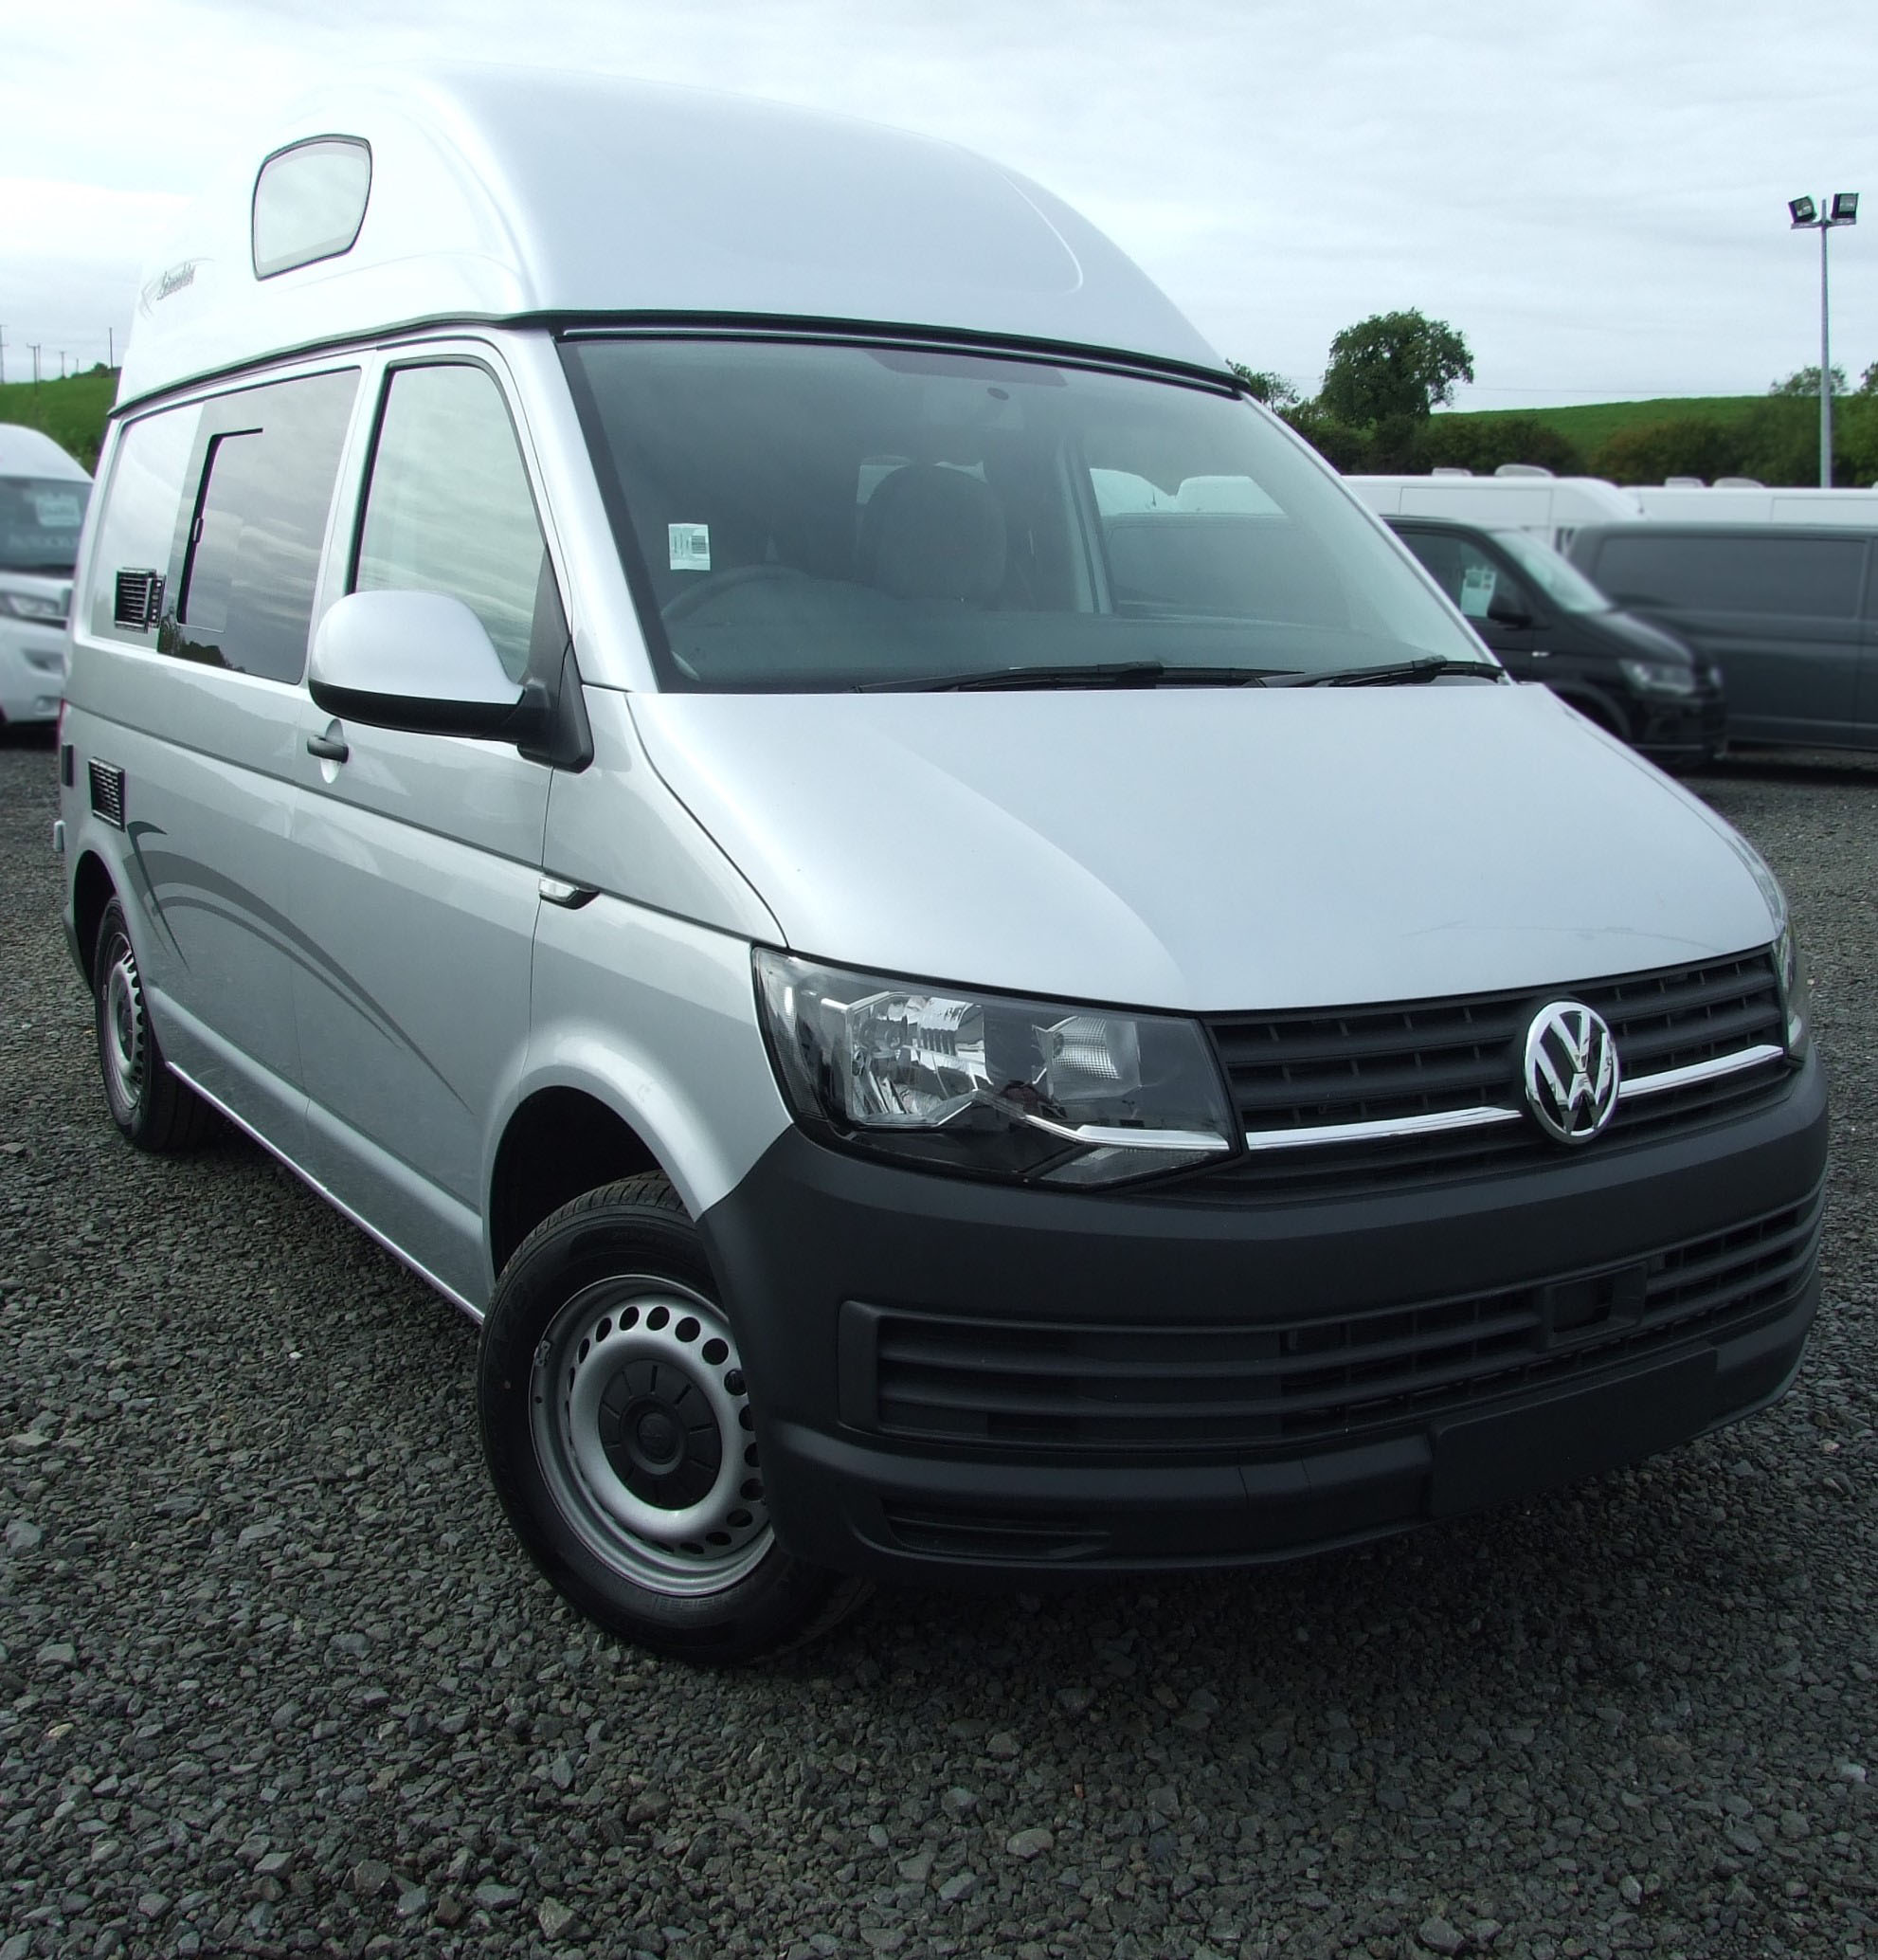 Vw Motorhomes For Sale: Conversion By Leisuredrive